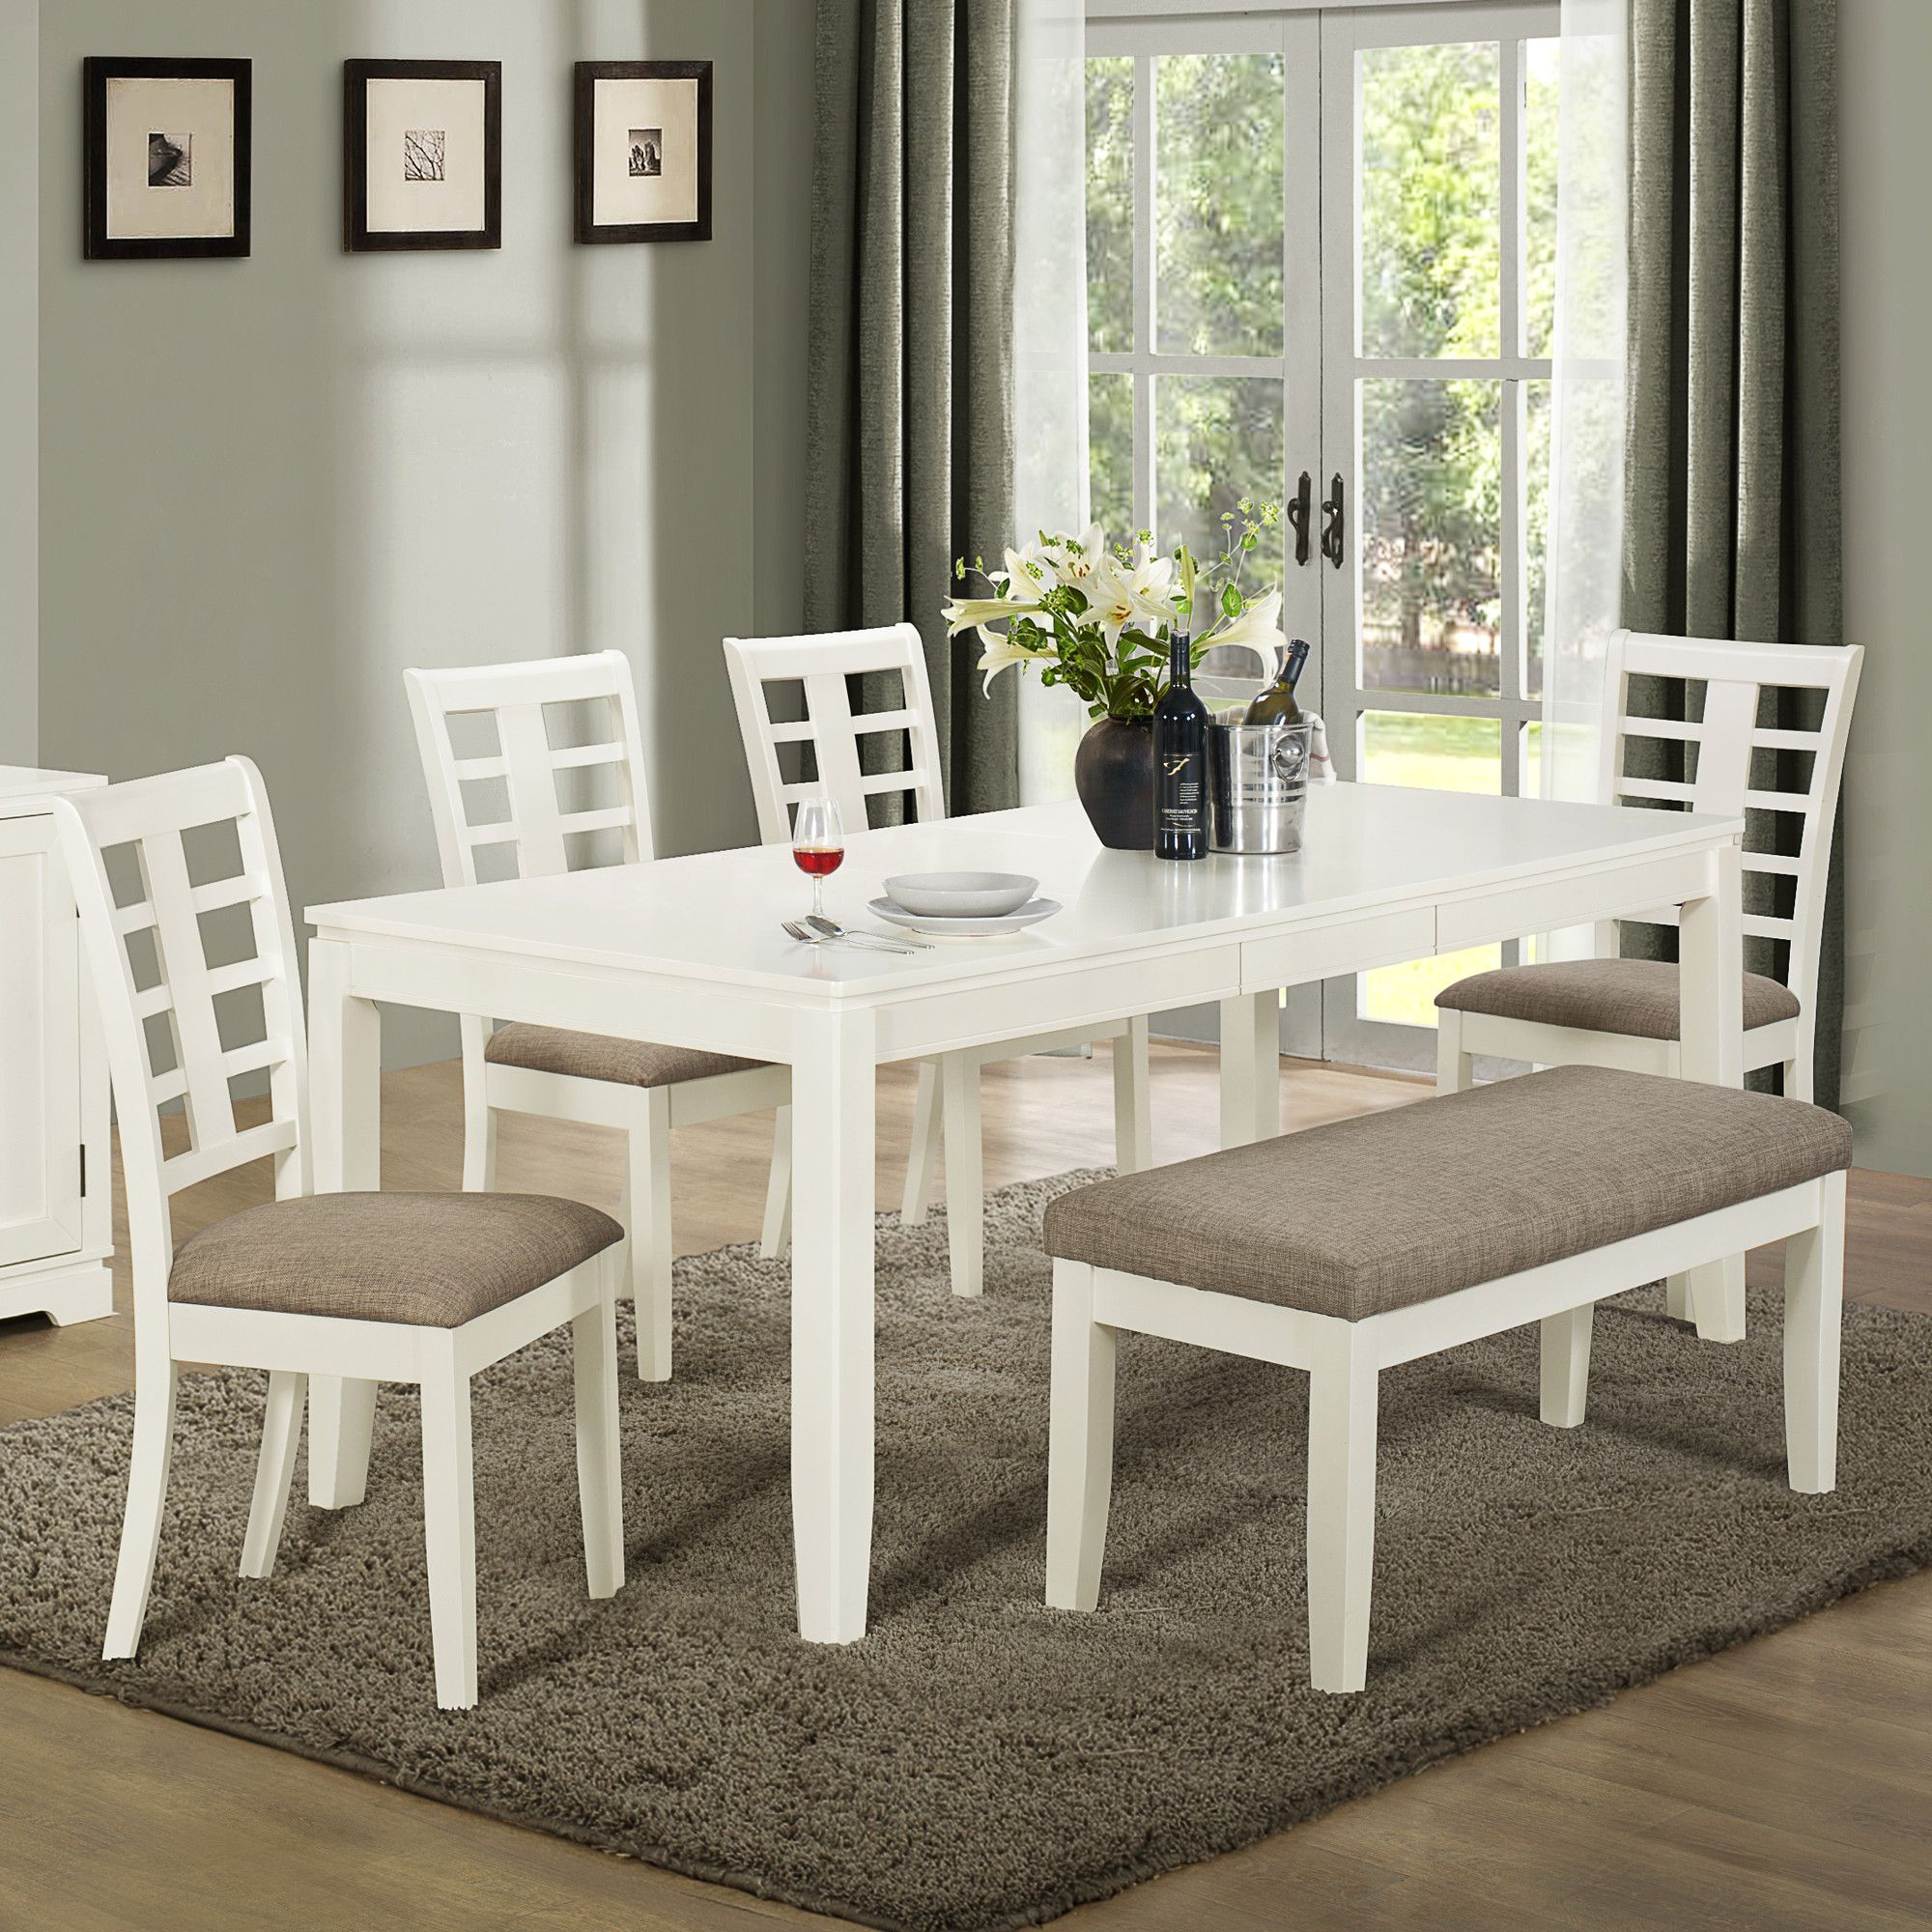 28 Big Small Dining Room Sets With Bench Seating Small Dining Room Set White Dining Room Table Dining Room Small